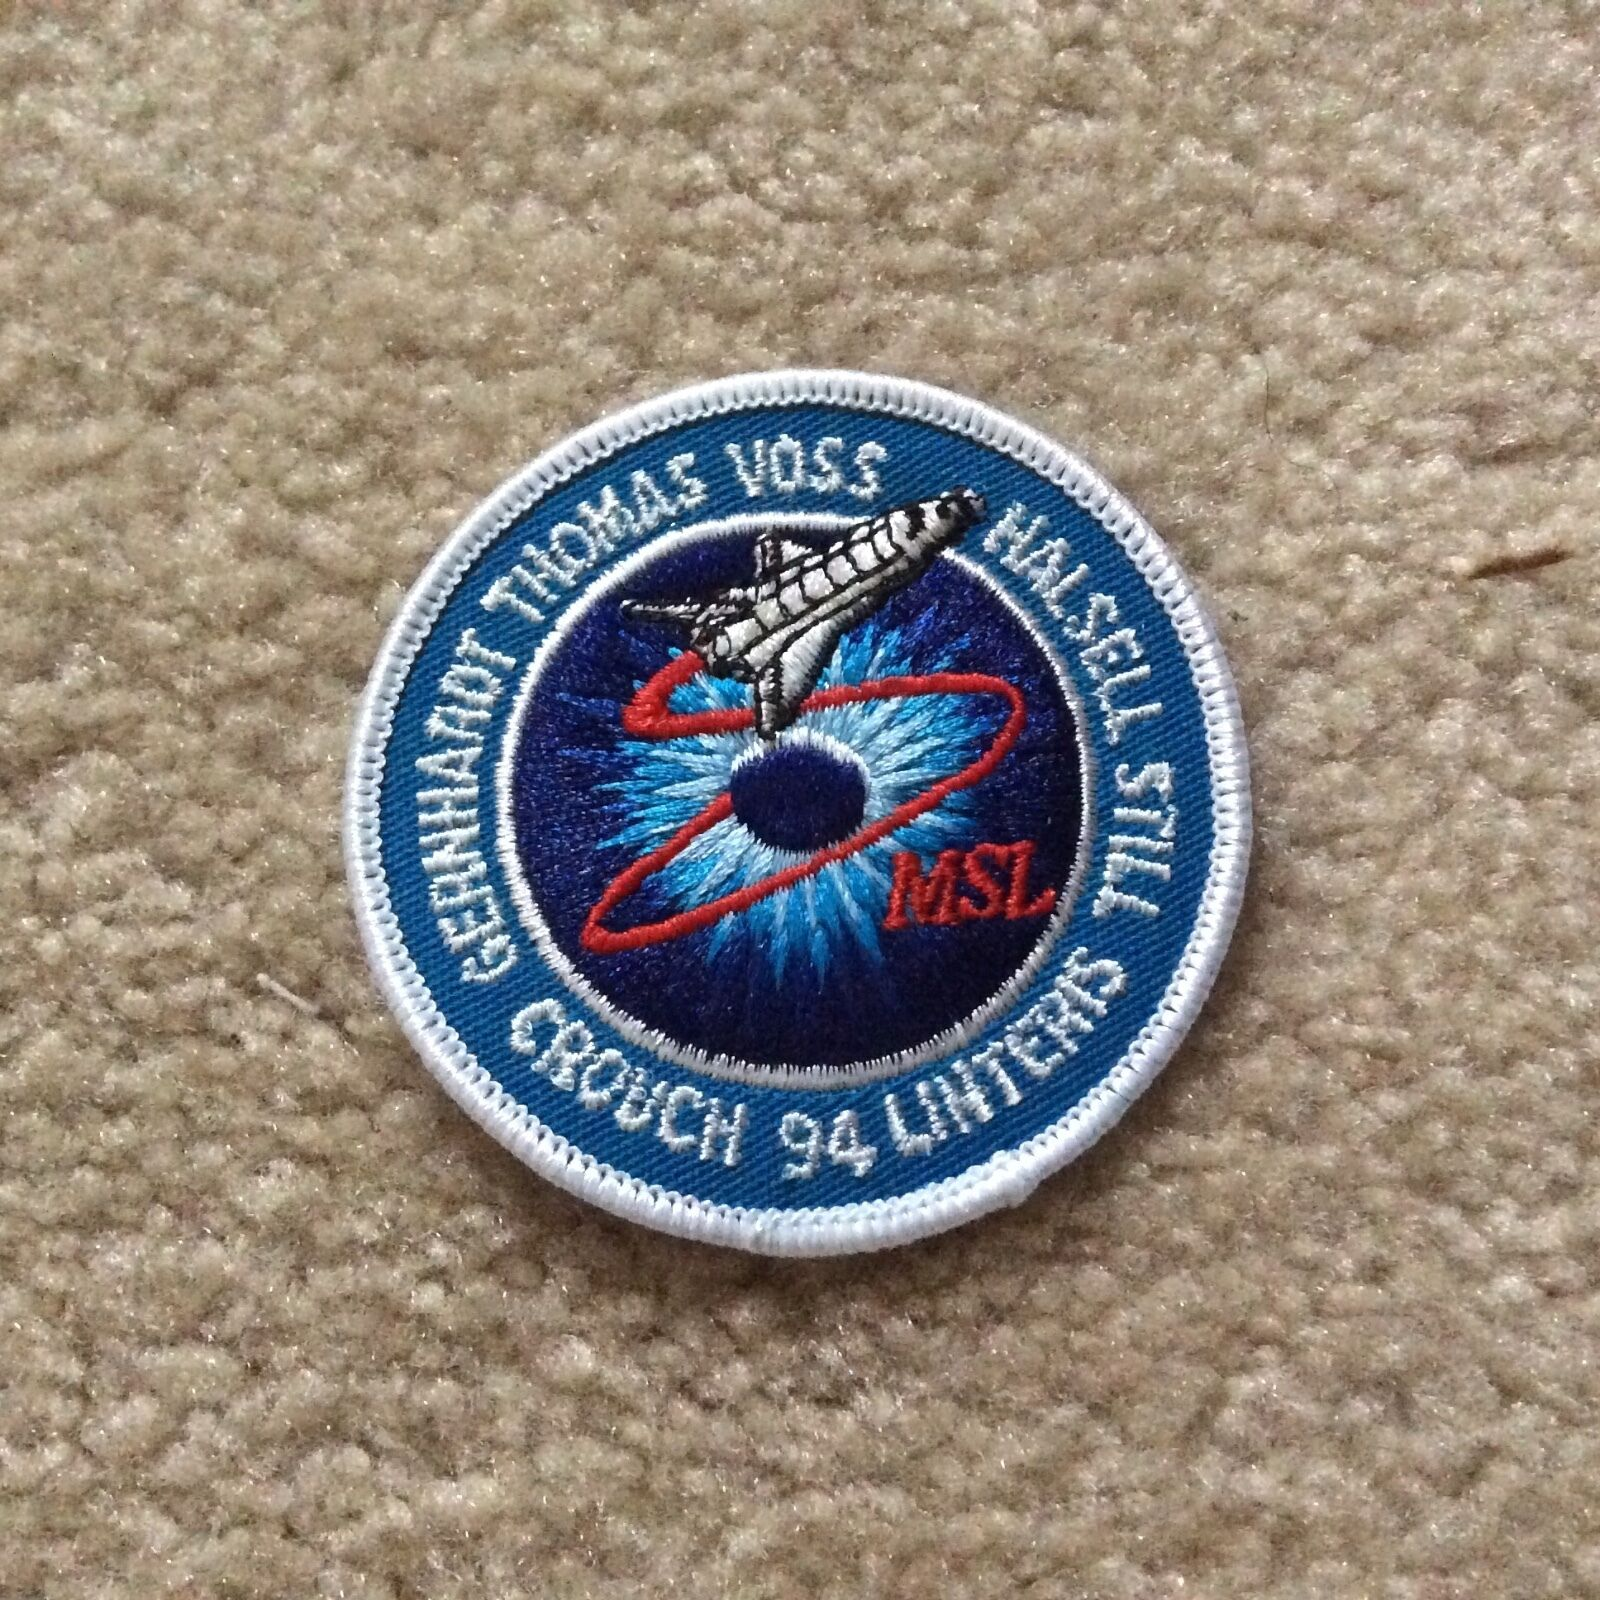 nasa patches for sale - 1000×1000